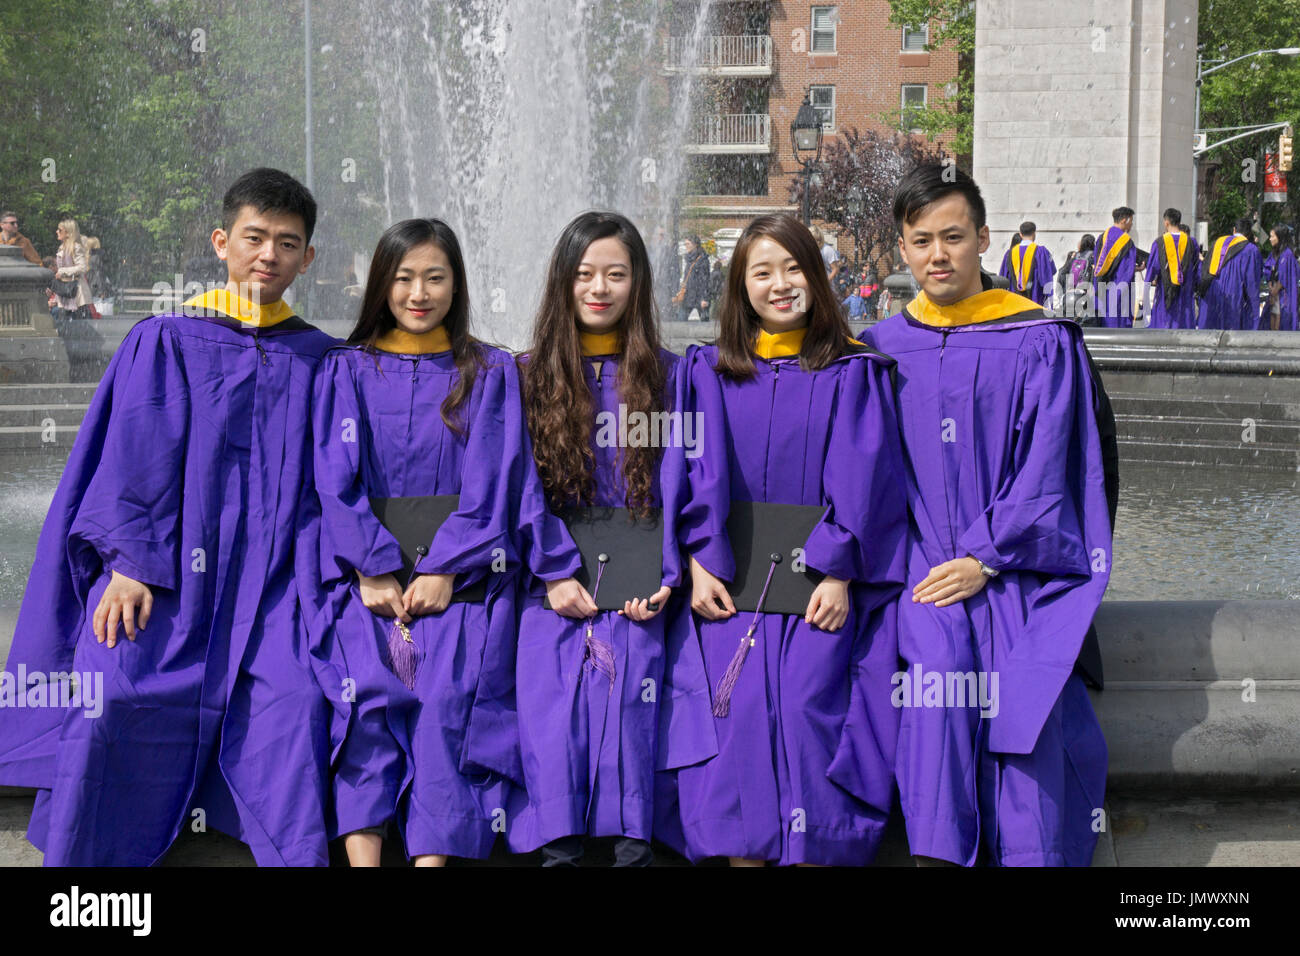 A group of Chinese students at NYU celebrating their graduation in ...